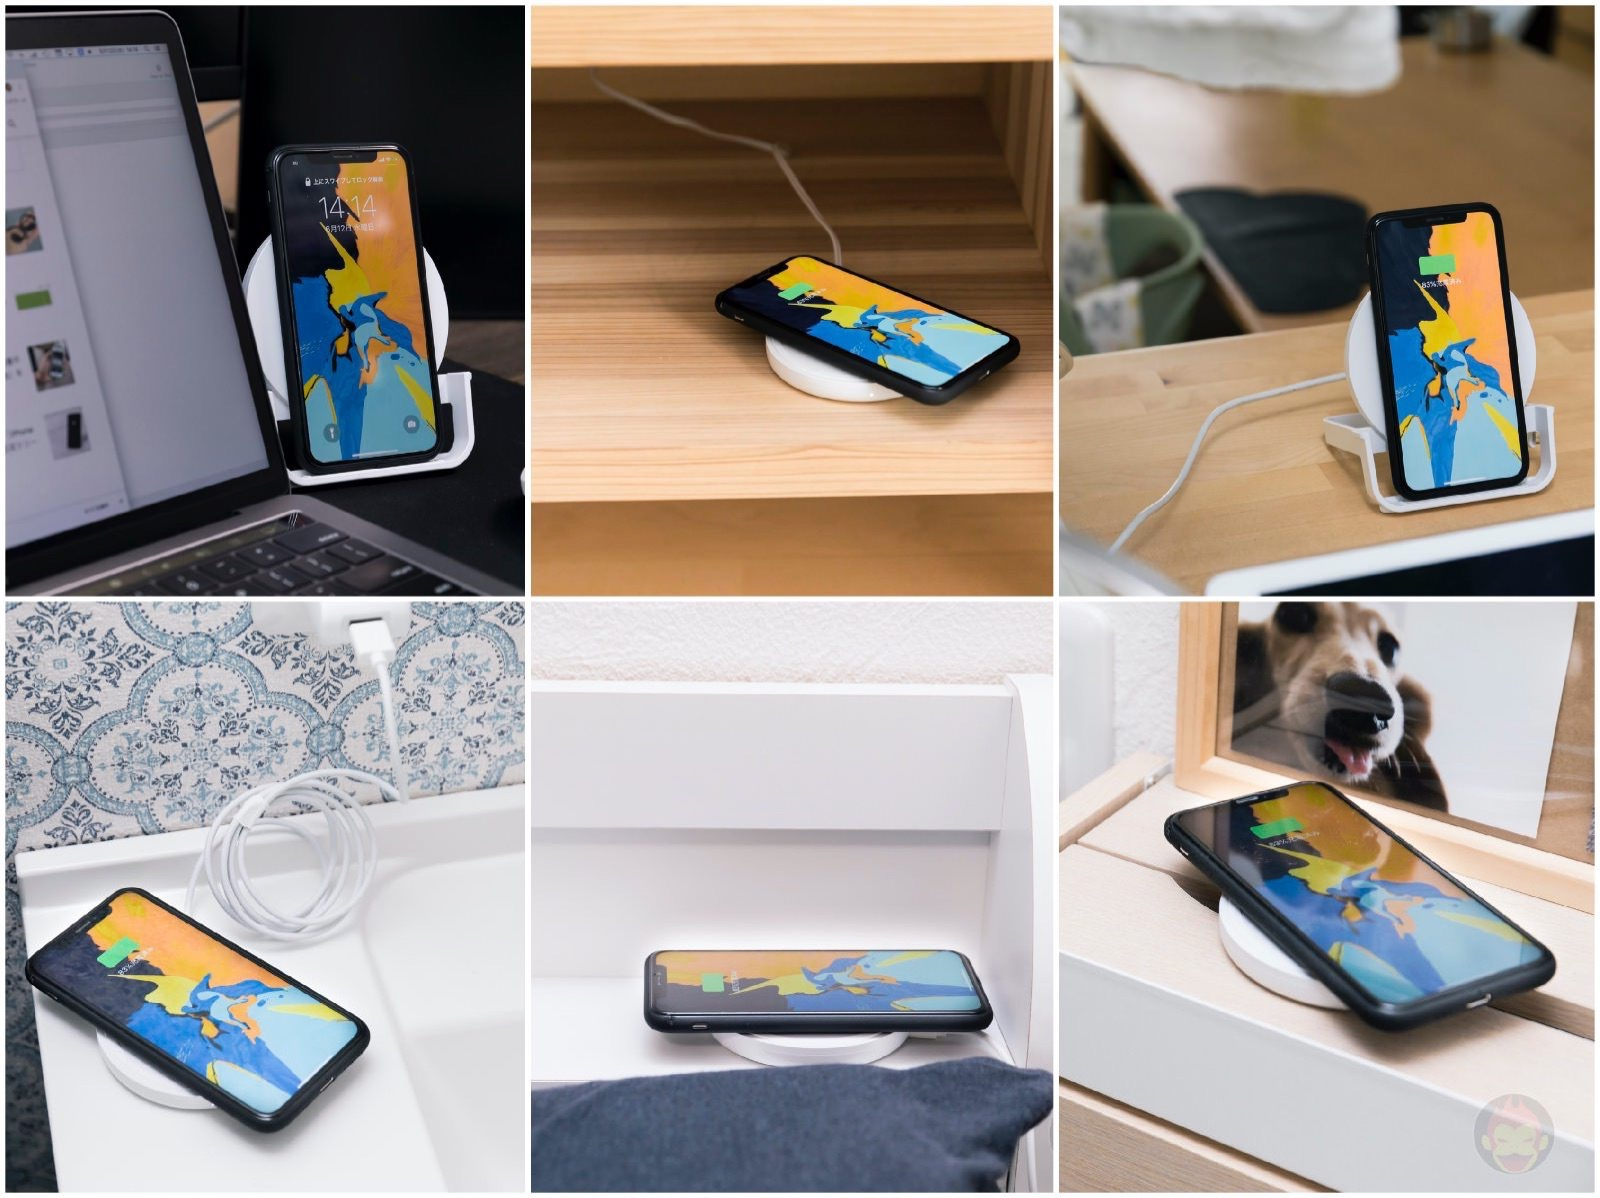 How Wireless Charging changes your everyday life